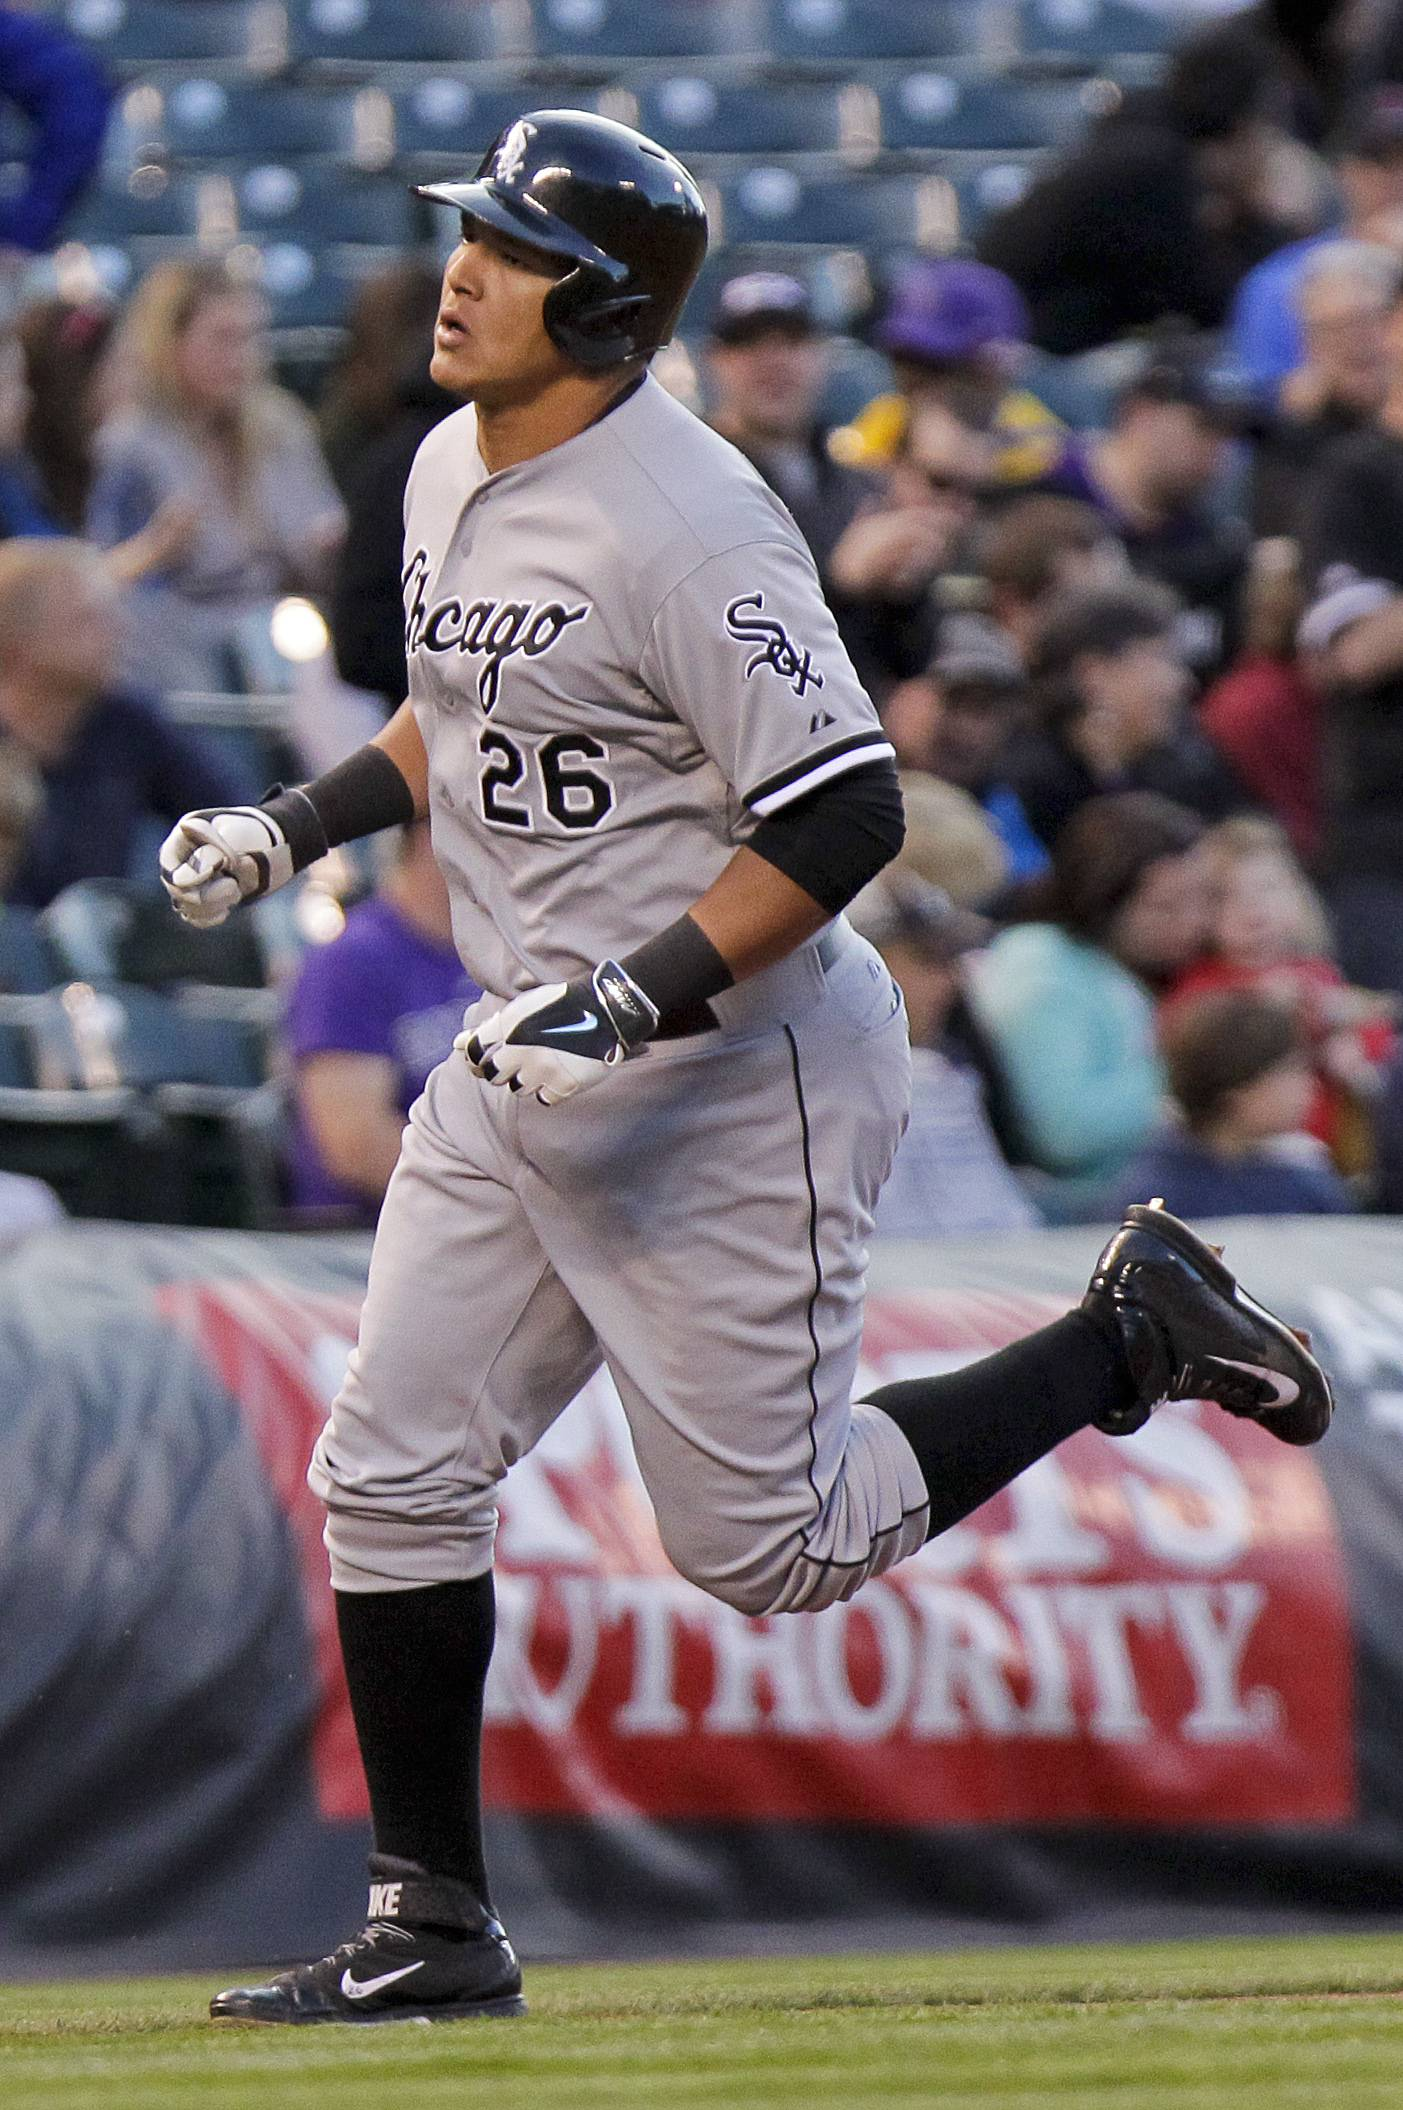 Injured White Sox right fielder Avisail Garcia is keeping his focus on getting back into the lineup.